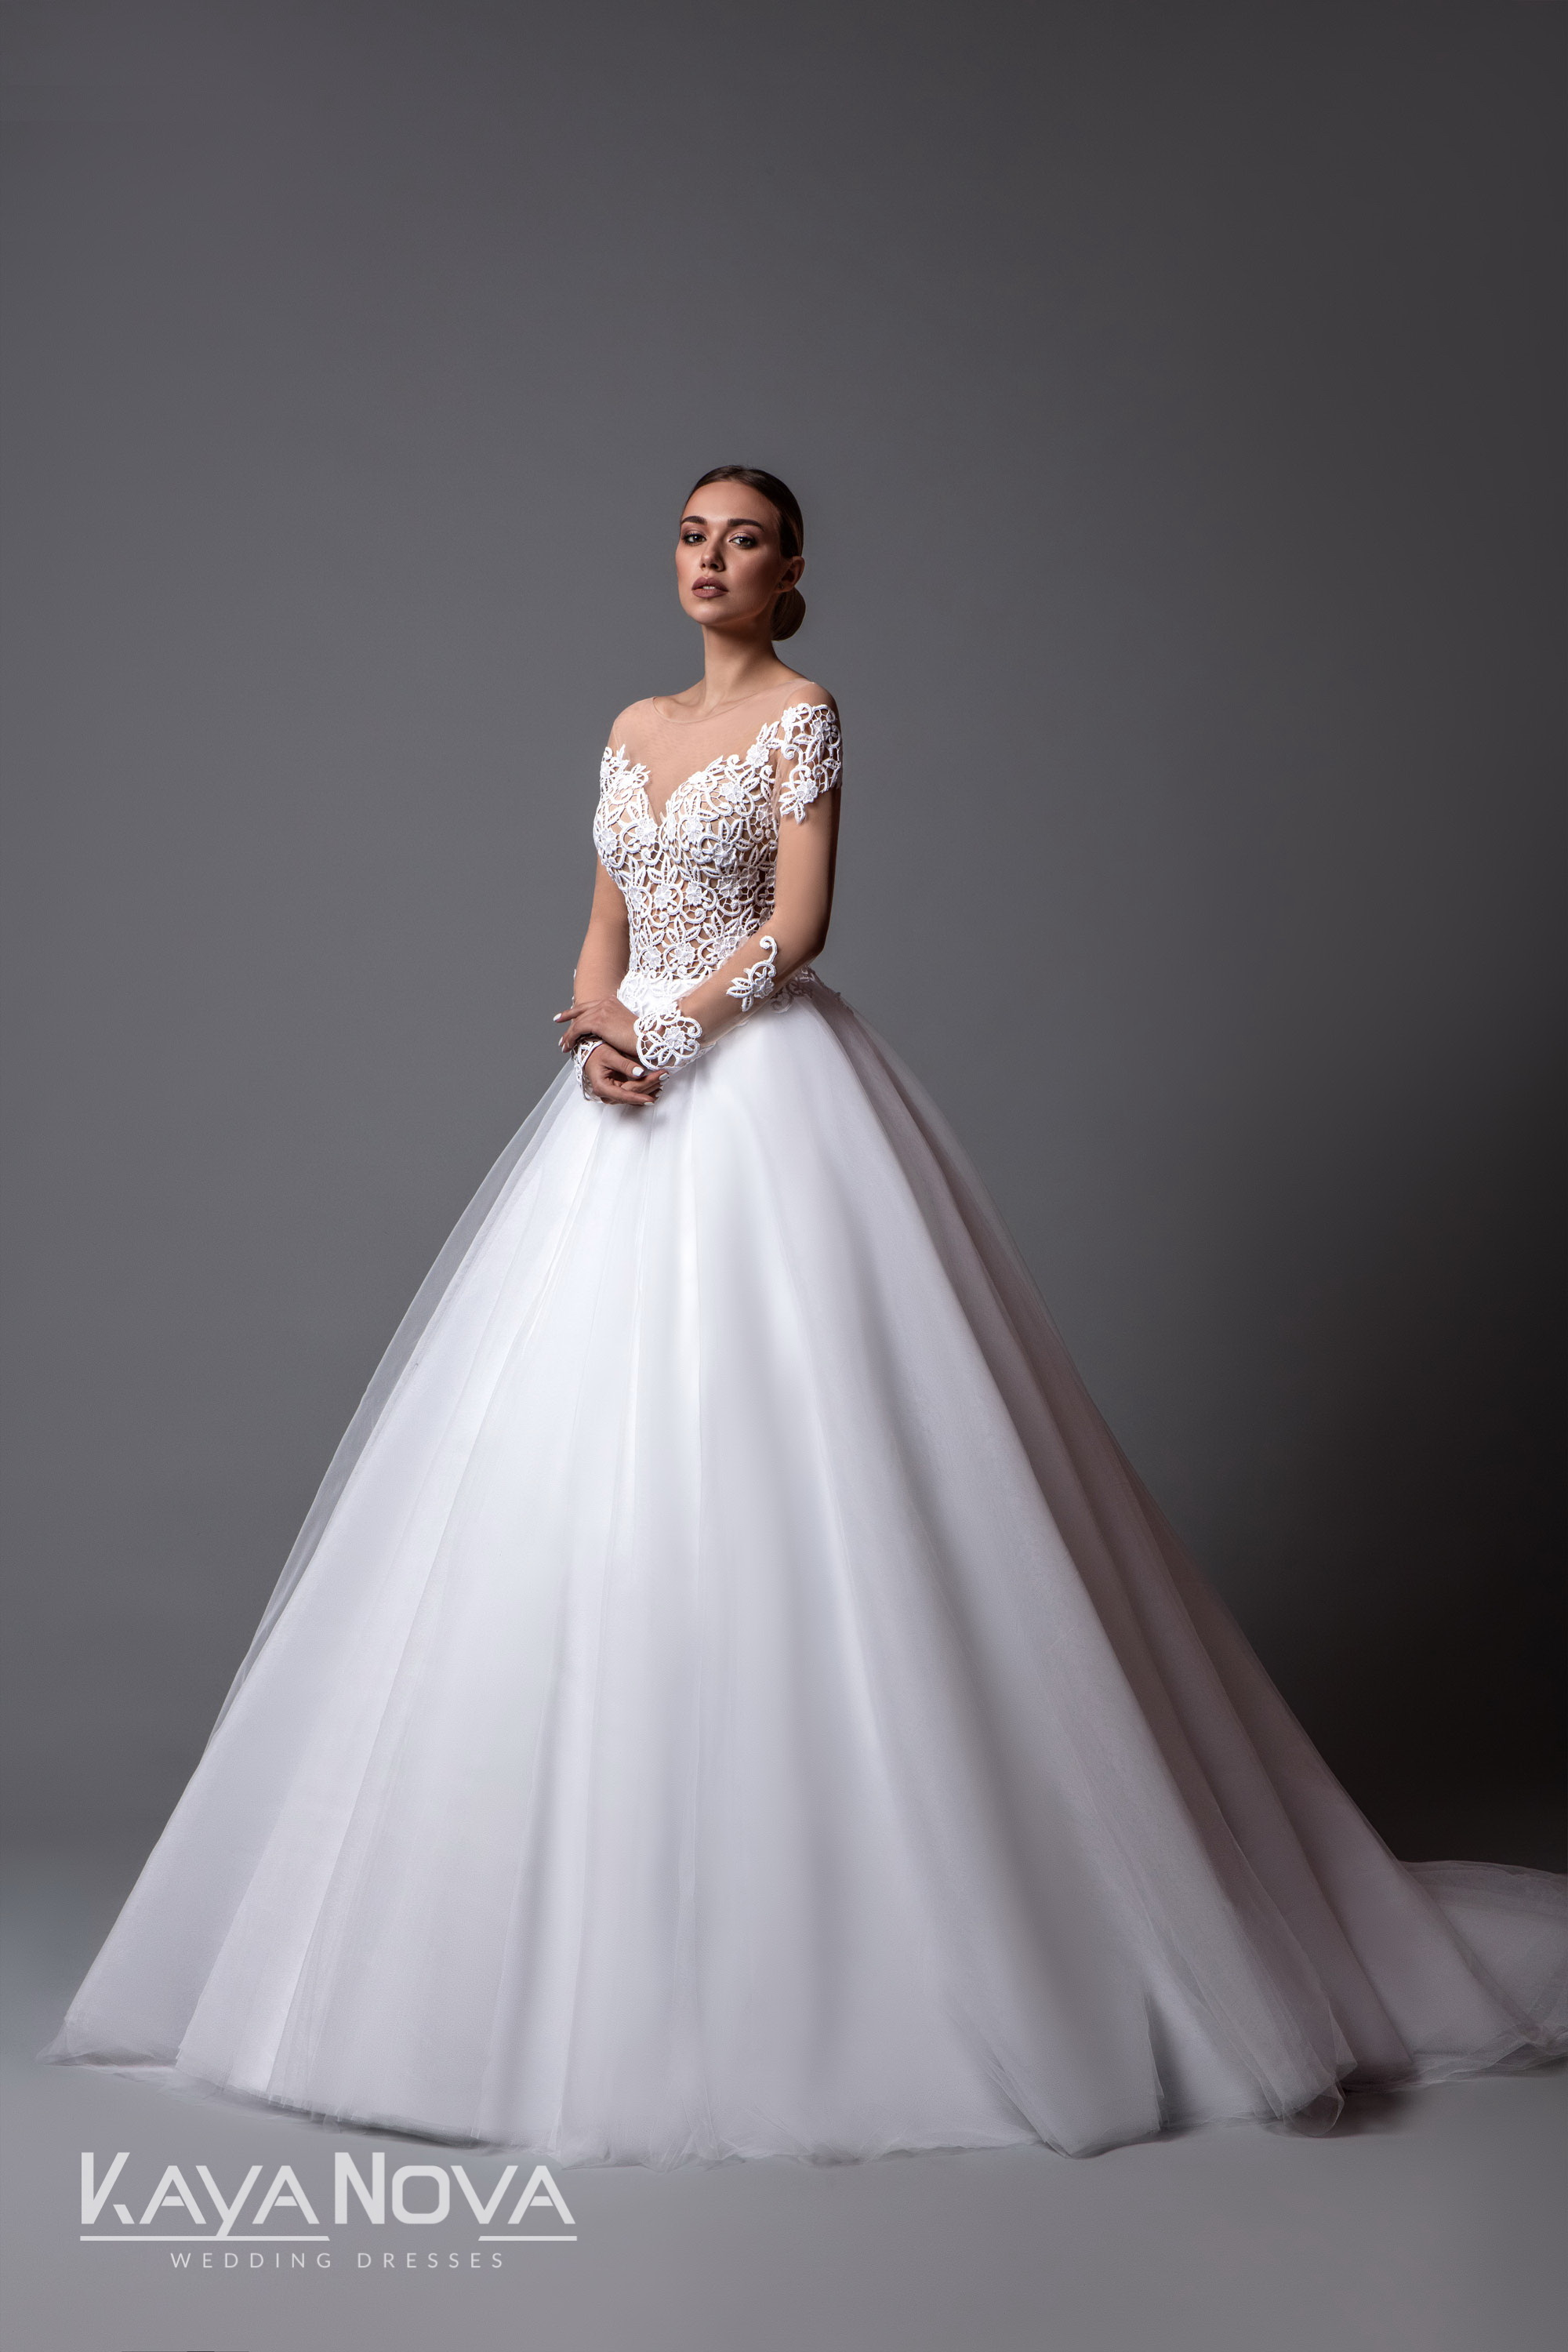 https://kayawedding.com/images/stories/virtuemart/product/Fidelia 1.jpg